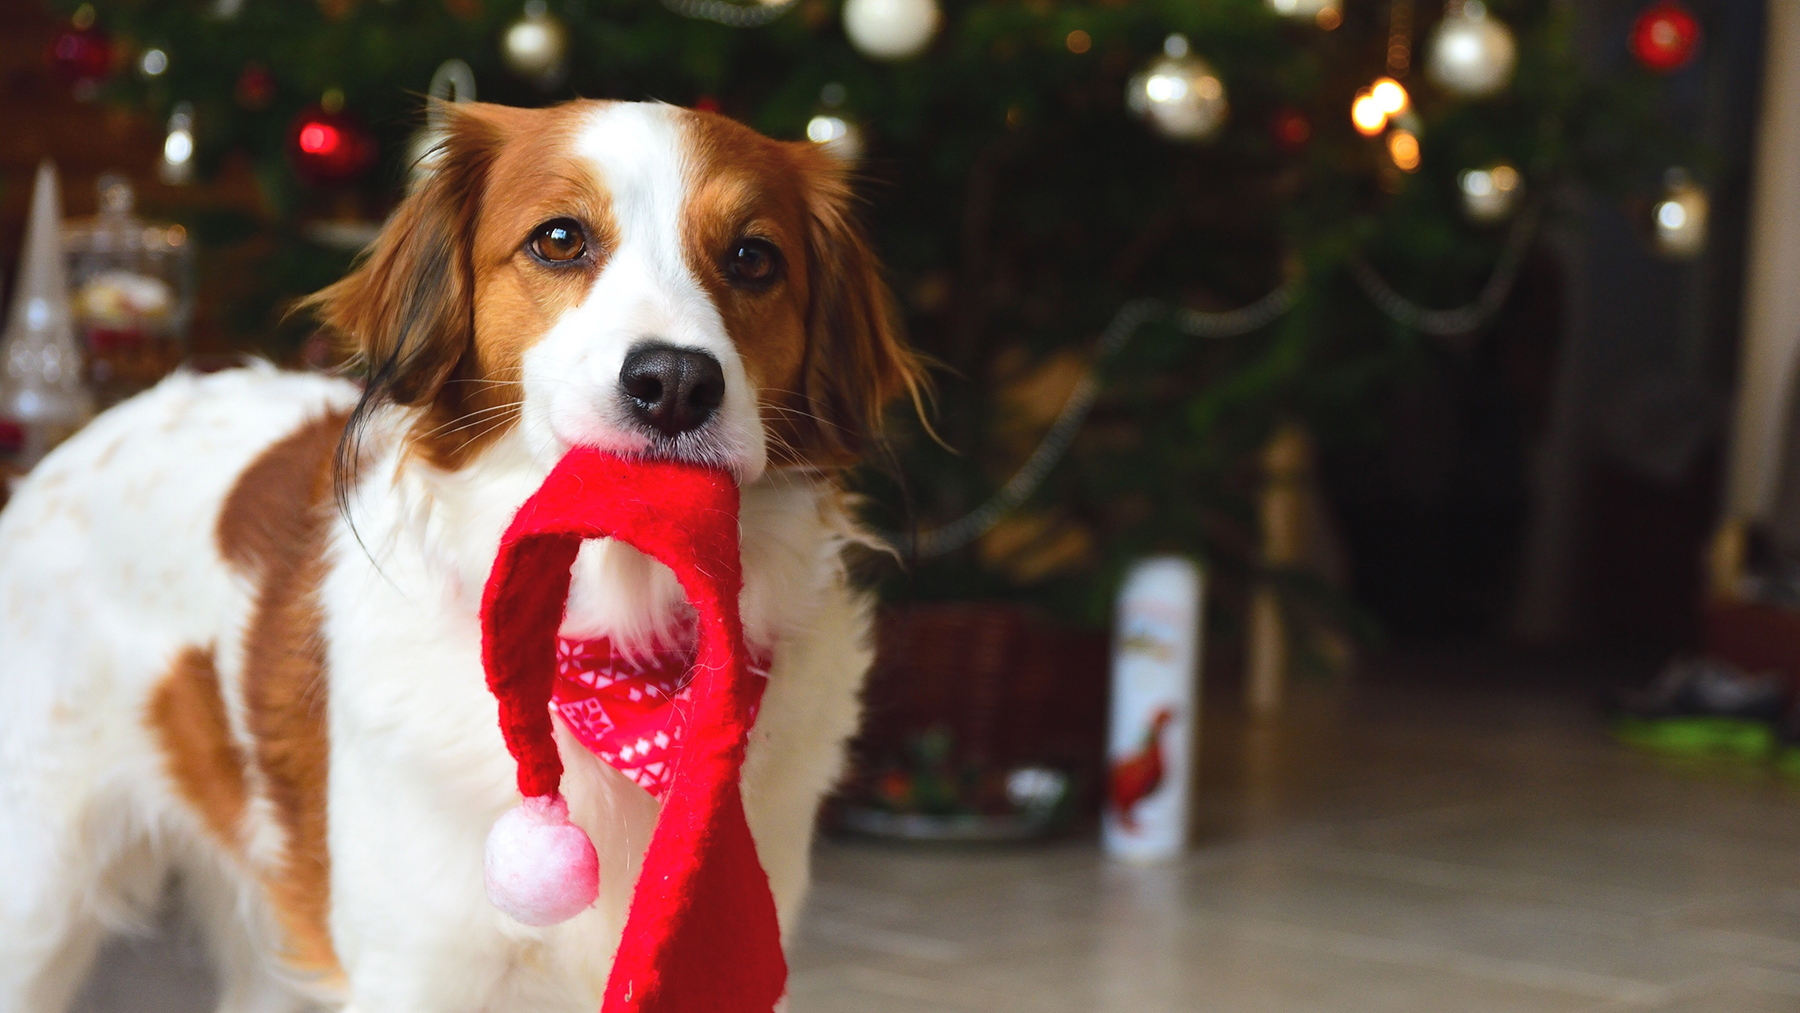 Dog in front of Christmas tree carrying Santa hat